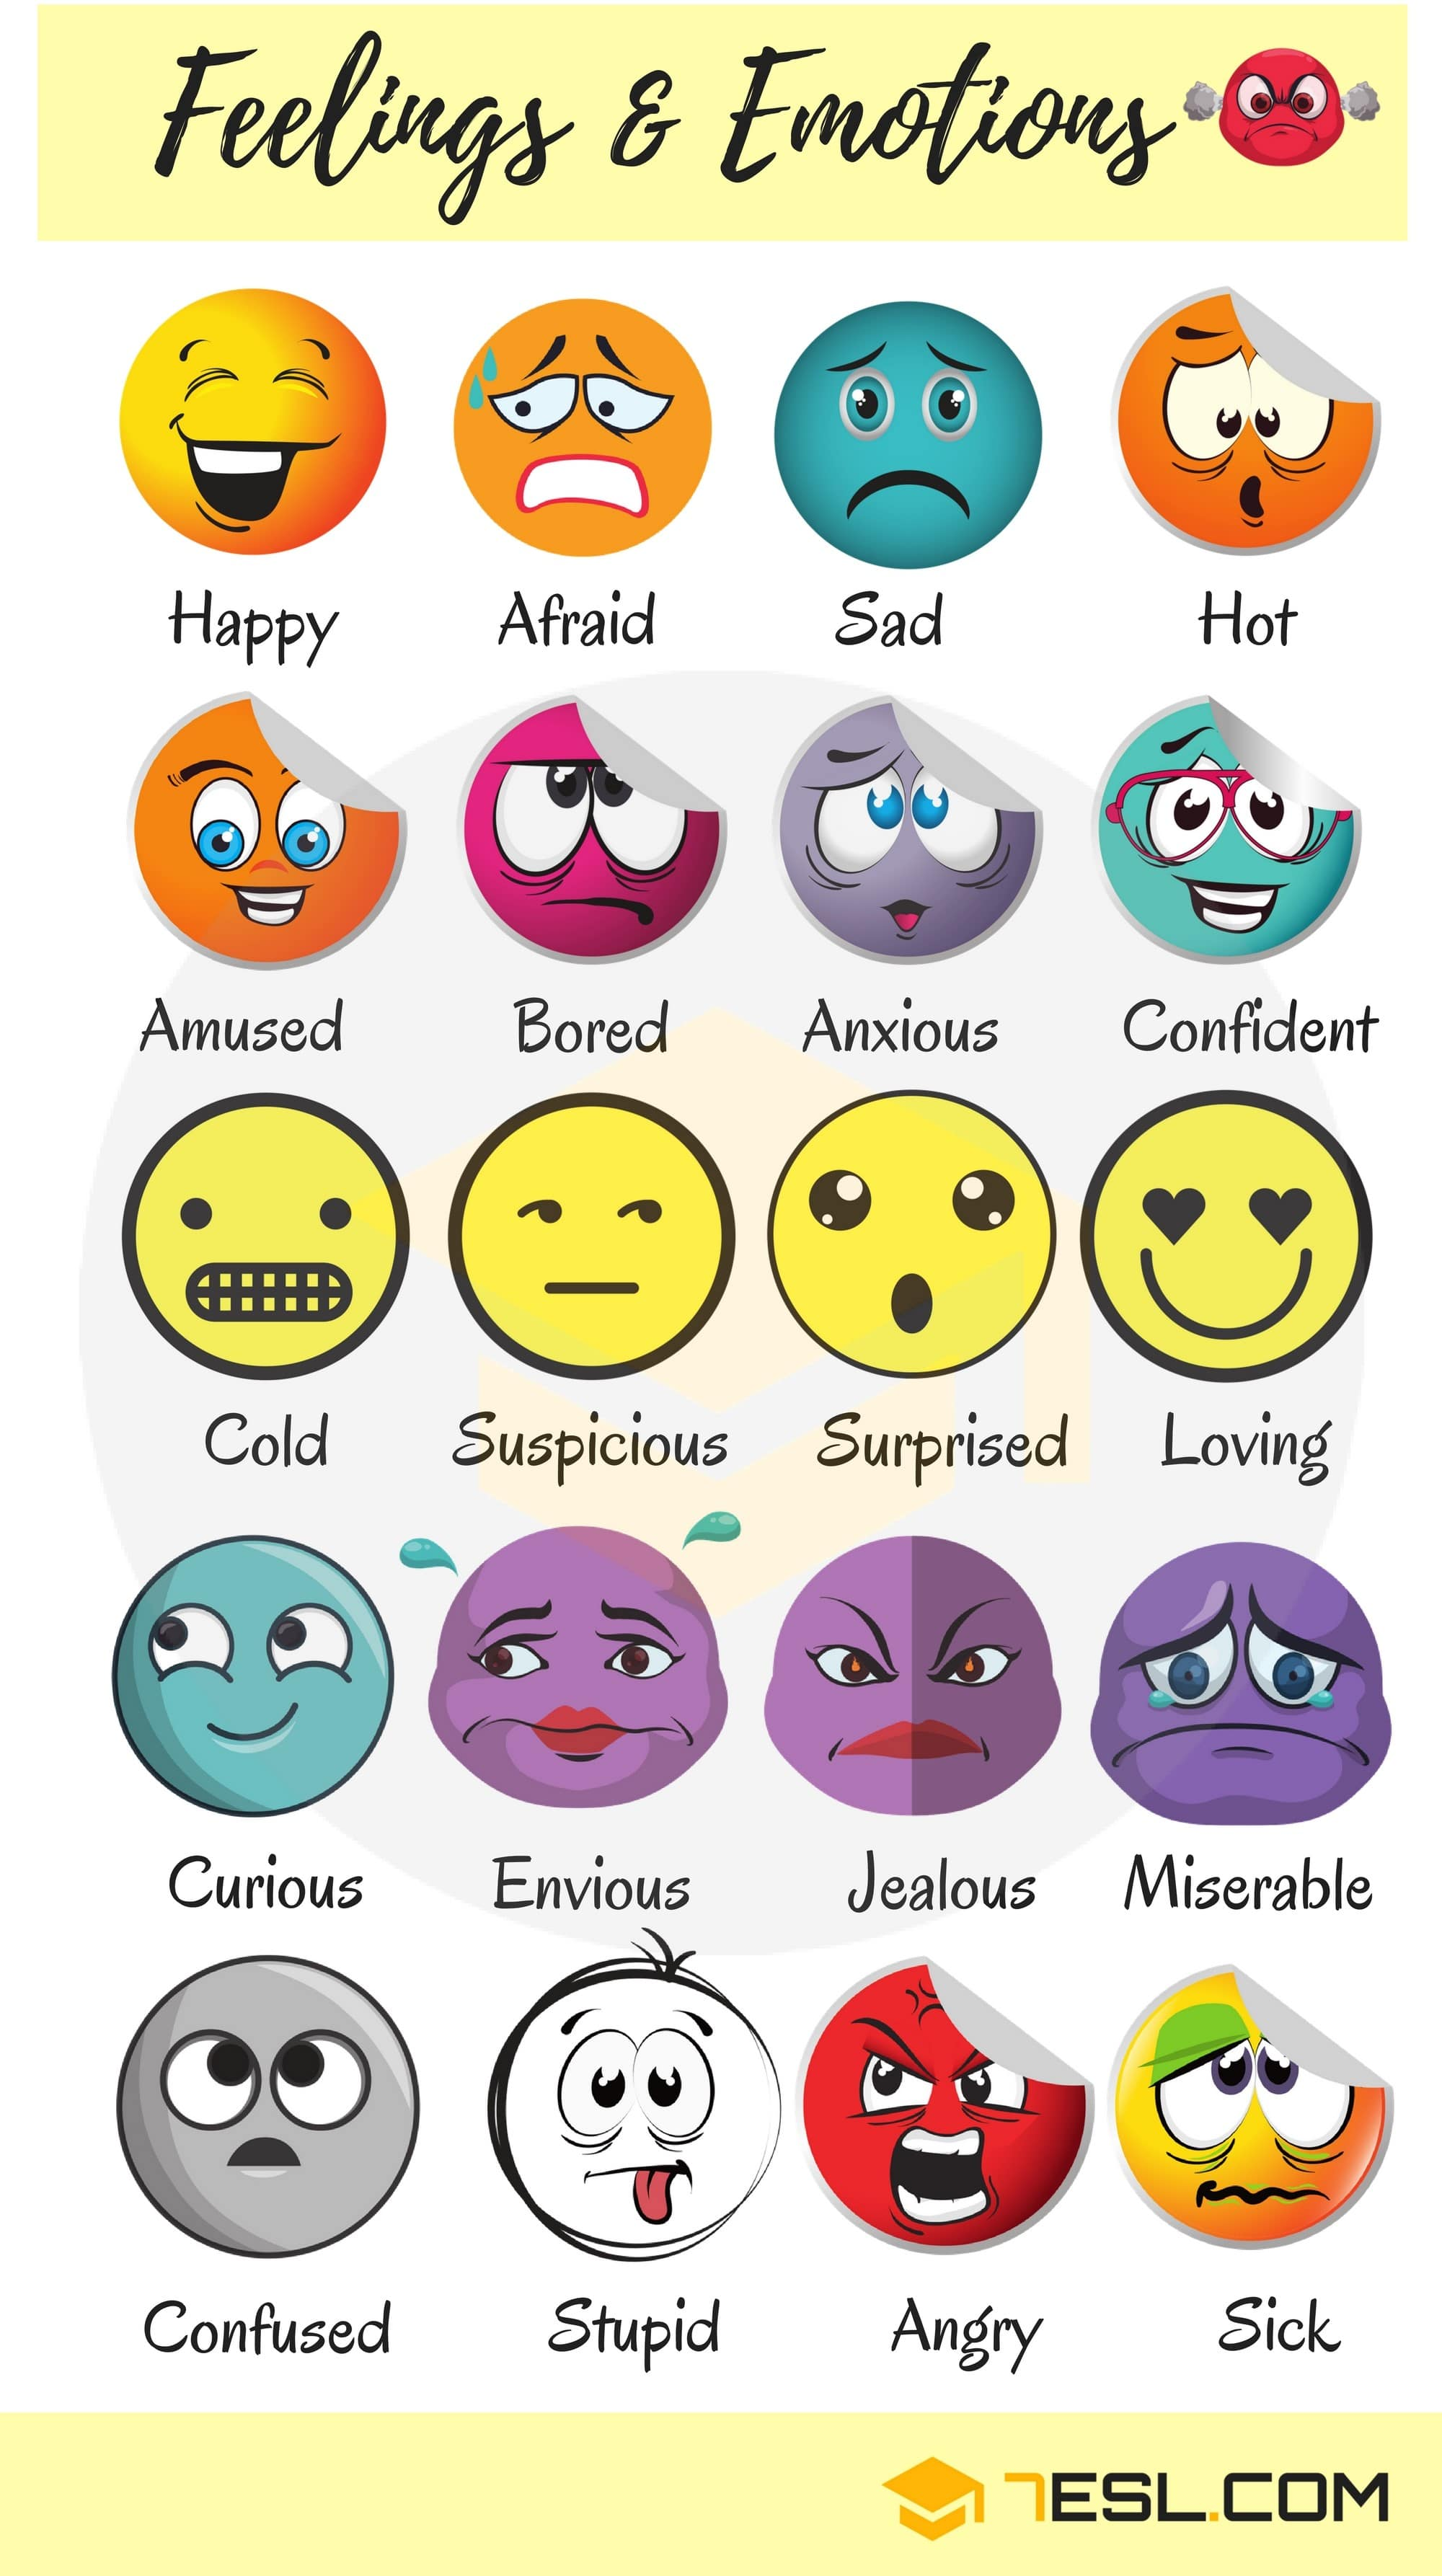 Below is a list of useful adjectives to describe feelings and emotions you should know.